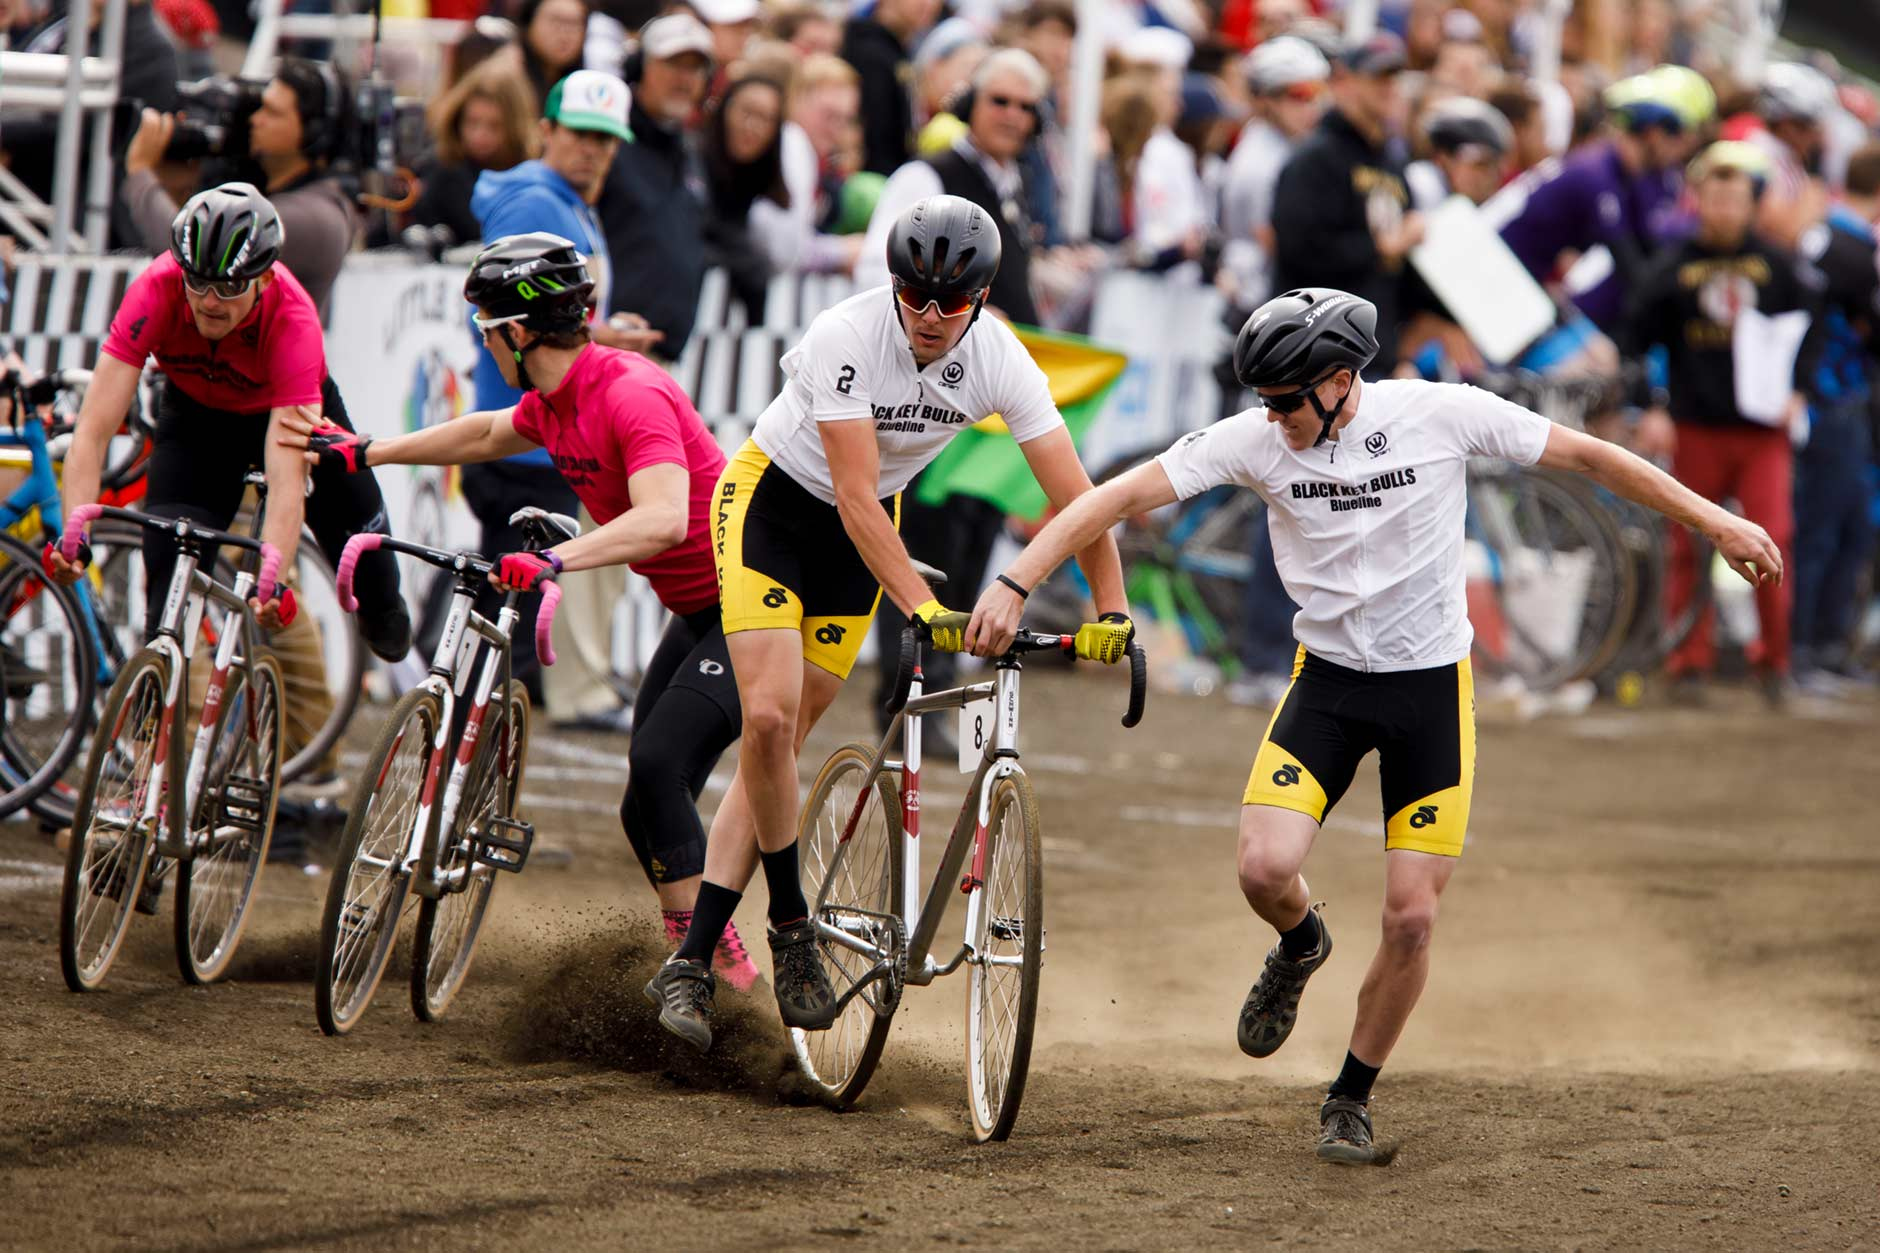 Black Key Bulls rider Charlie Hammon, center, hands off to teammate Kevin Mangel during an exchange late in the Men's Little 500 at Bill Armstrong Stadium on Saturday, April 22, 2017. (James Brosher/IU Communications)